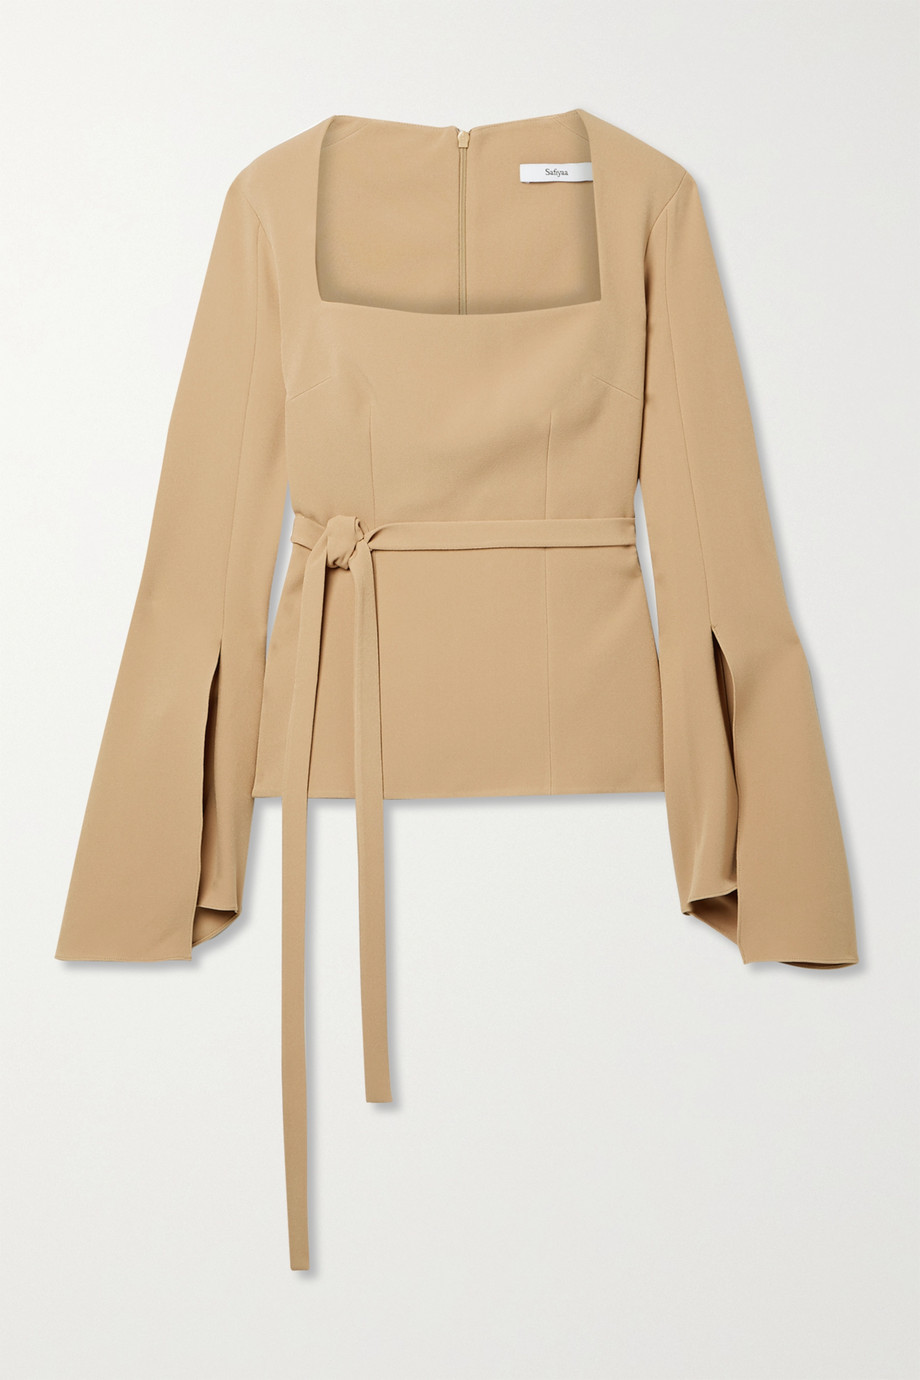 Safiyaa Emalyn belted stretch-crepe top